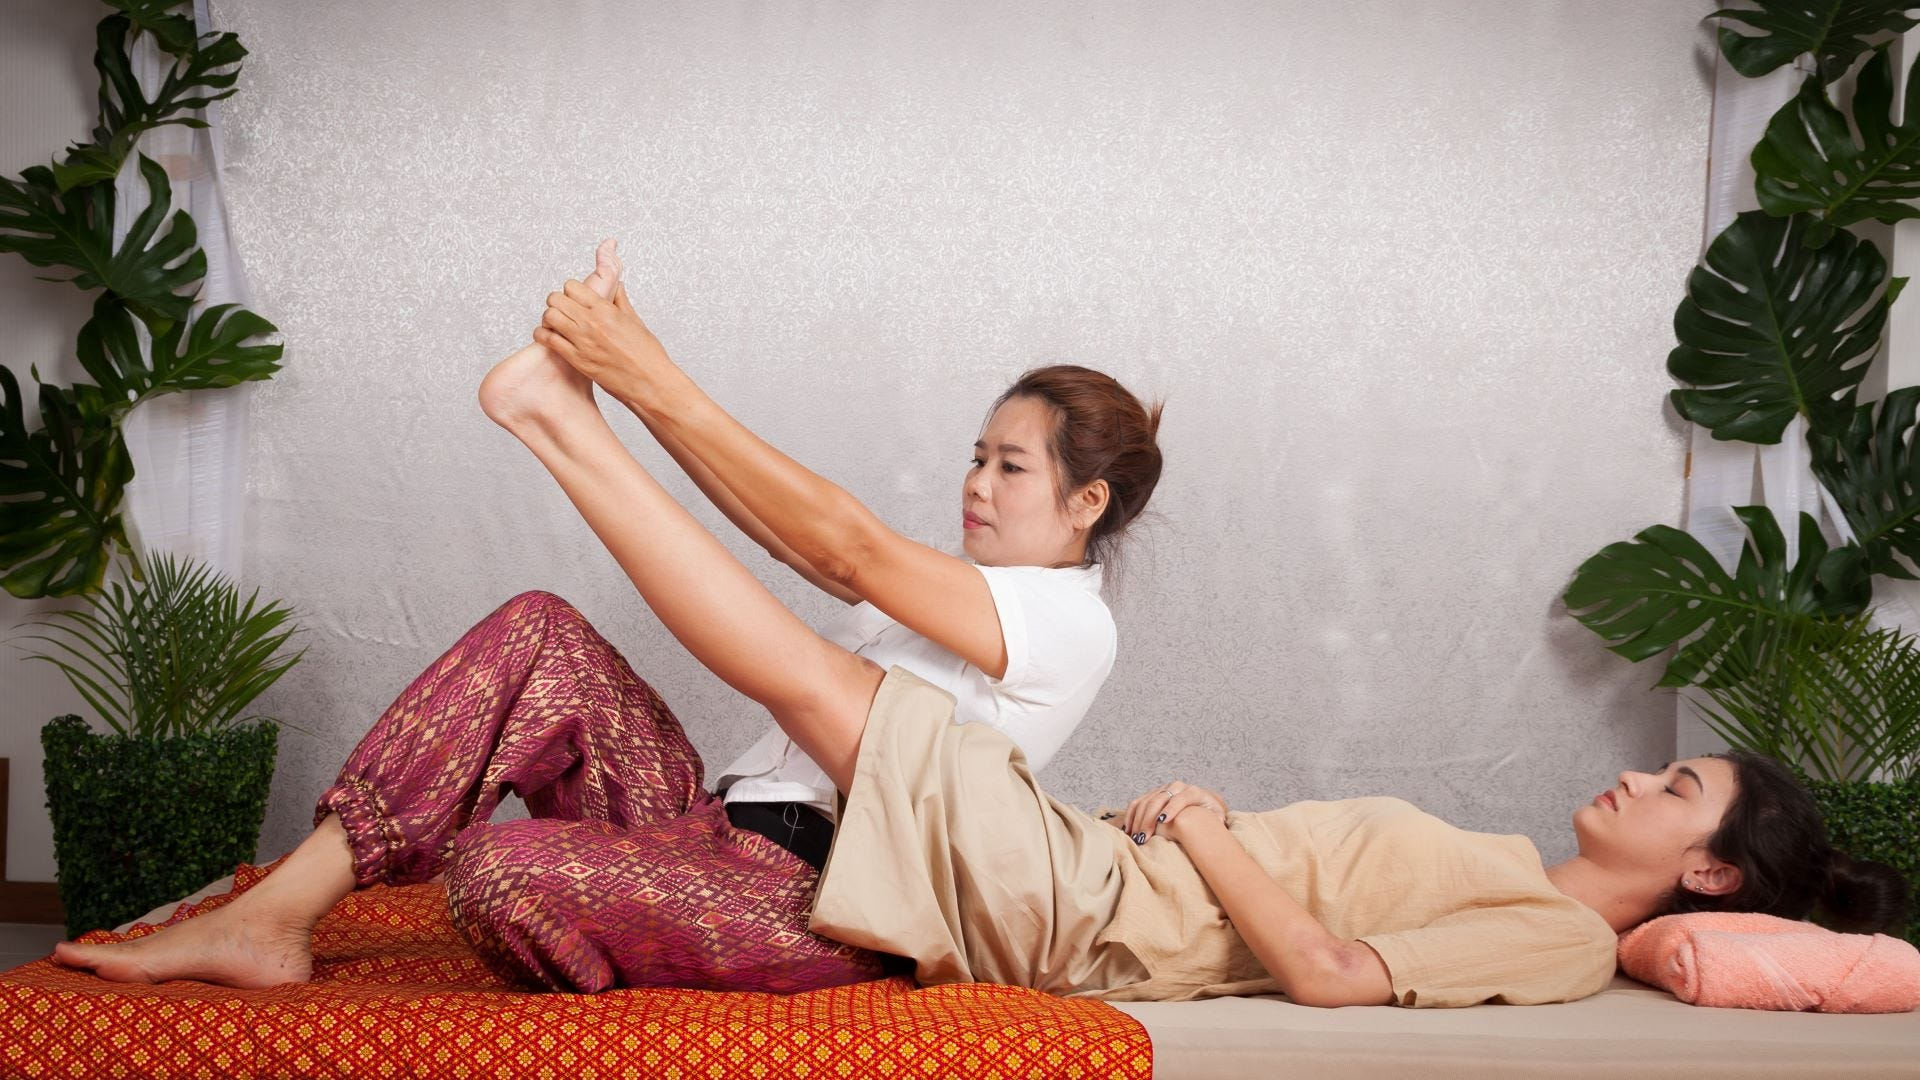 A woman giving another woman a Thai massage.